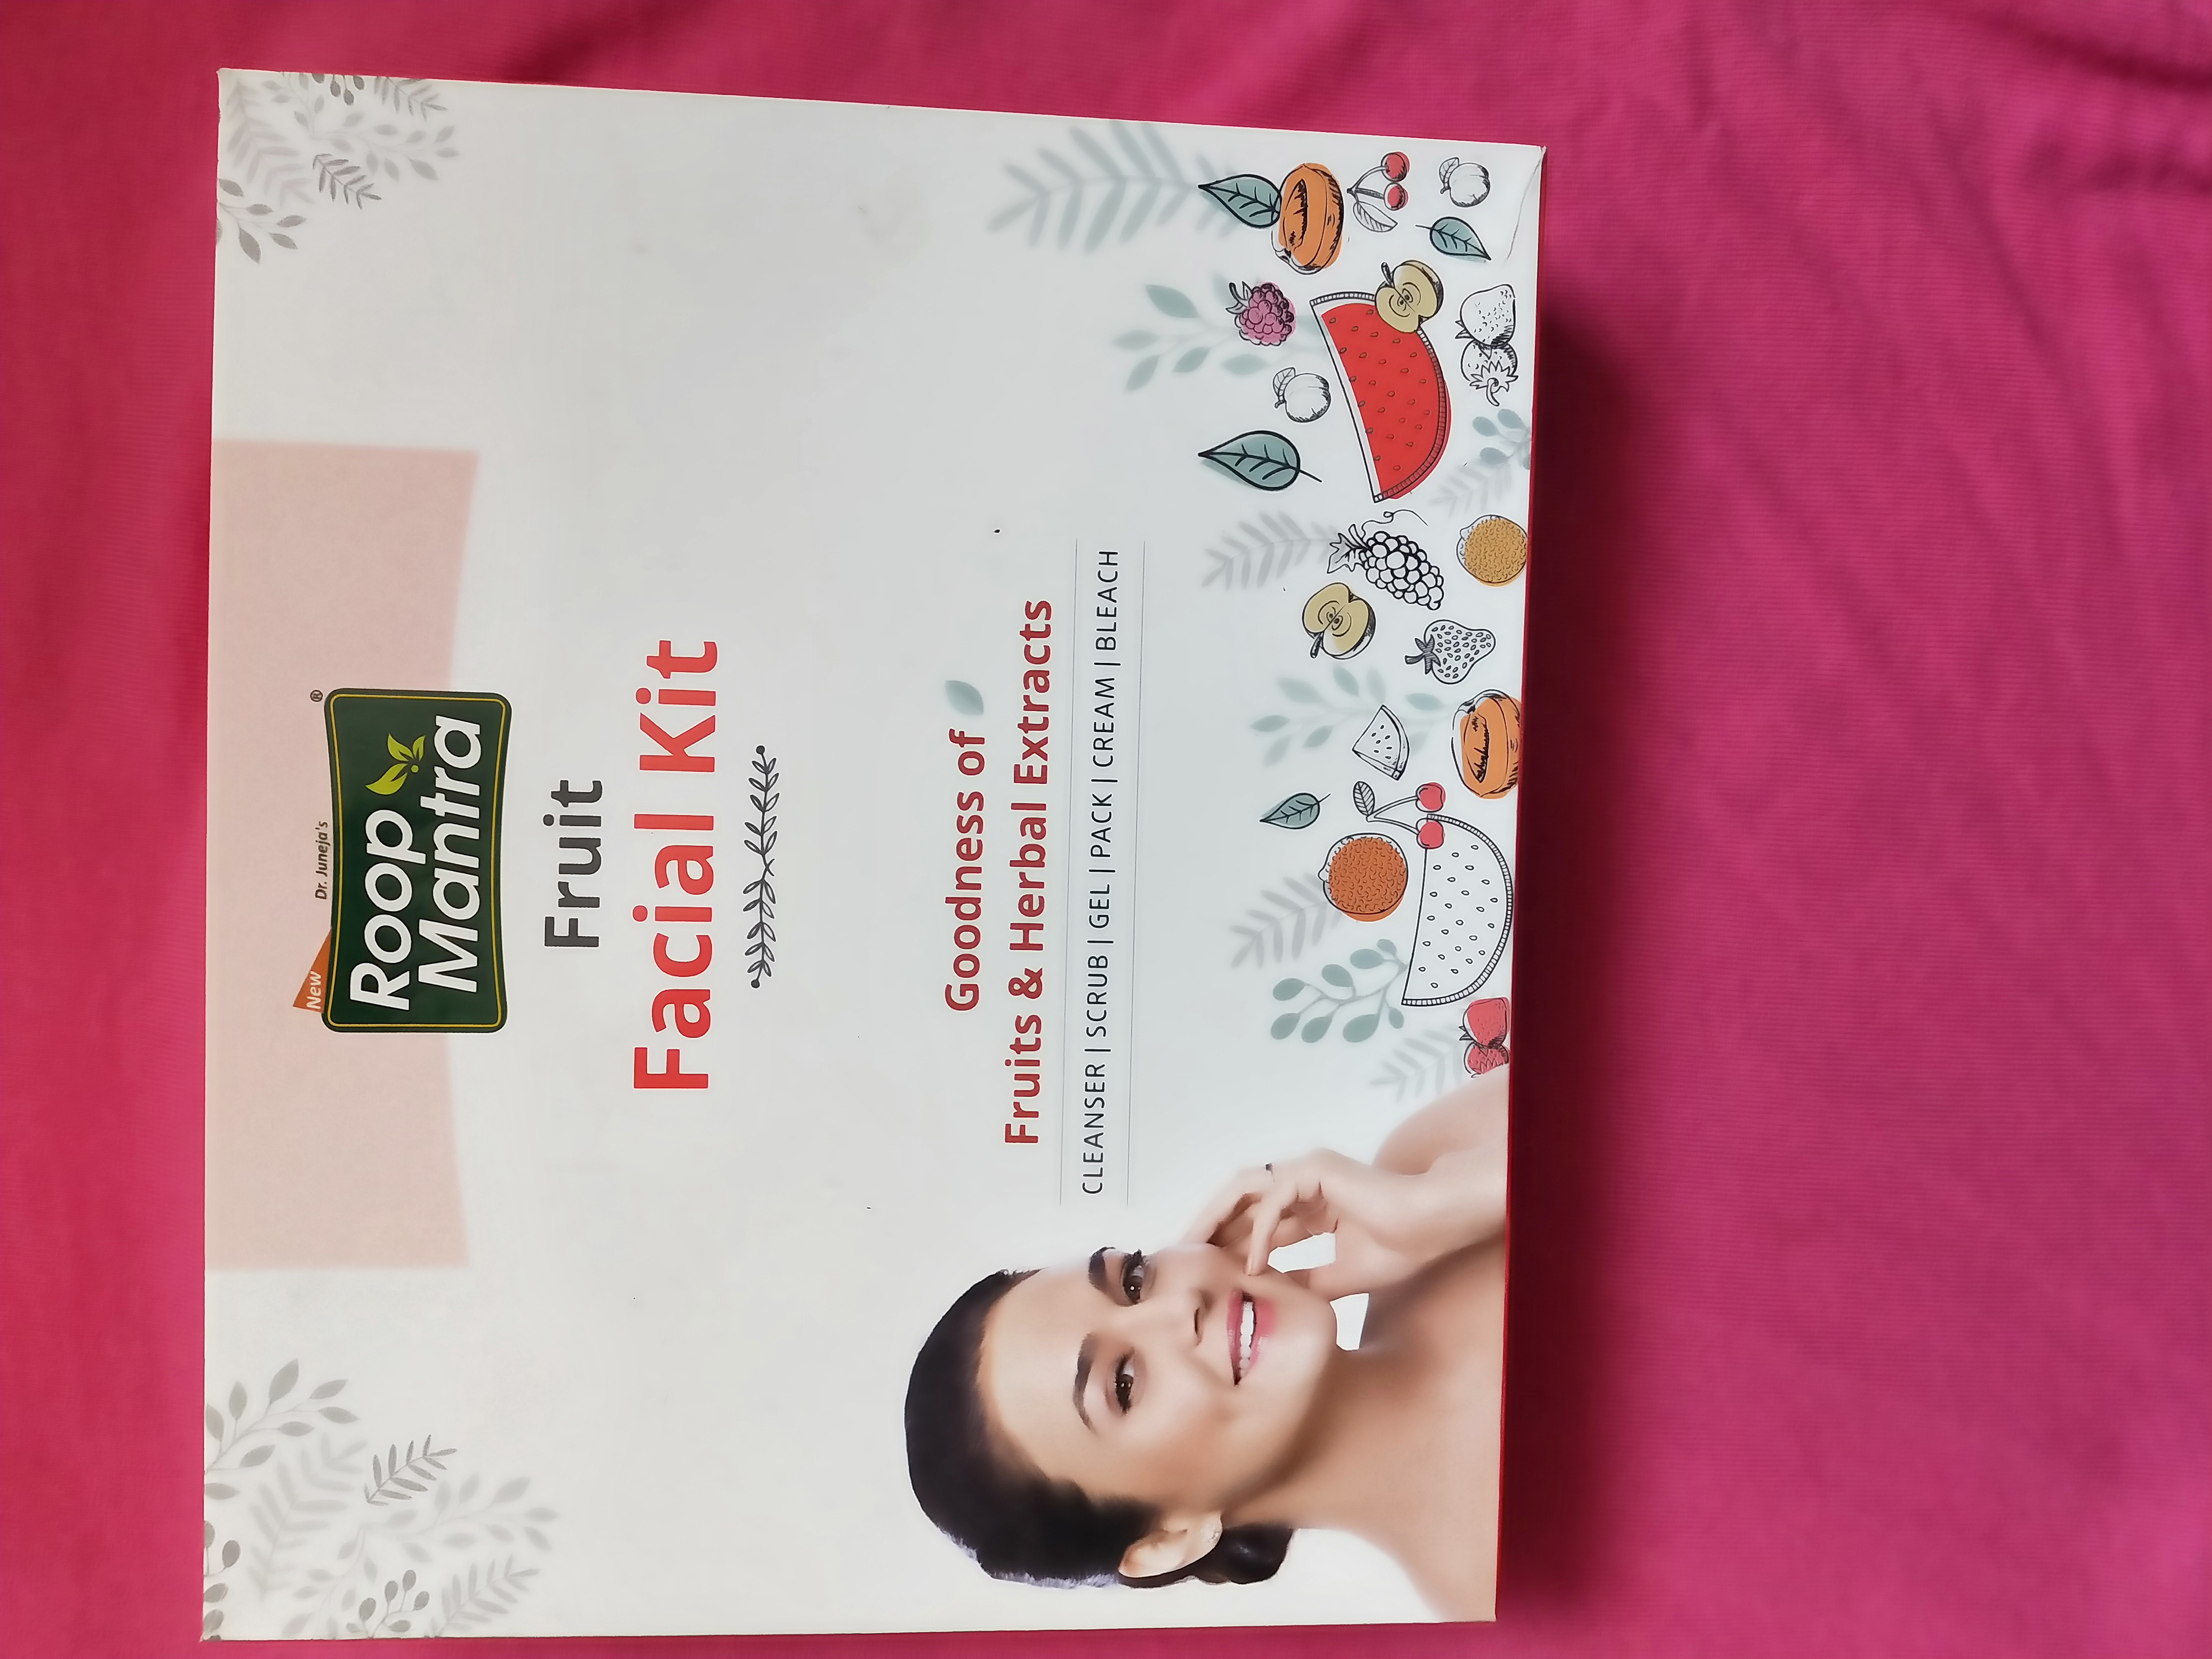 Roop Mantra Fruit Facial Kit pic 1-Facial at home at affordable price-By miss_hungry_soul